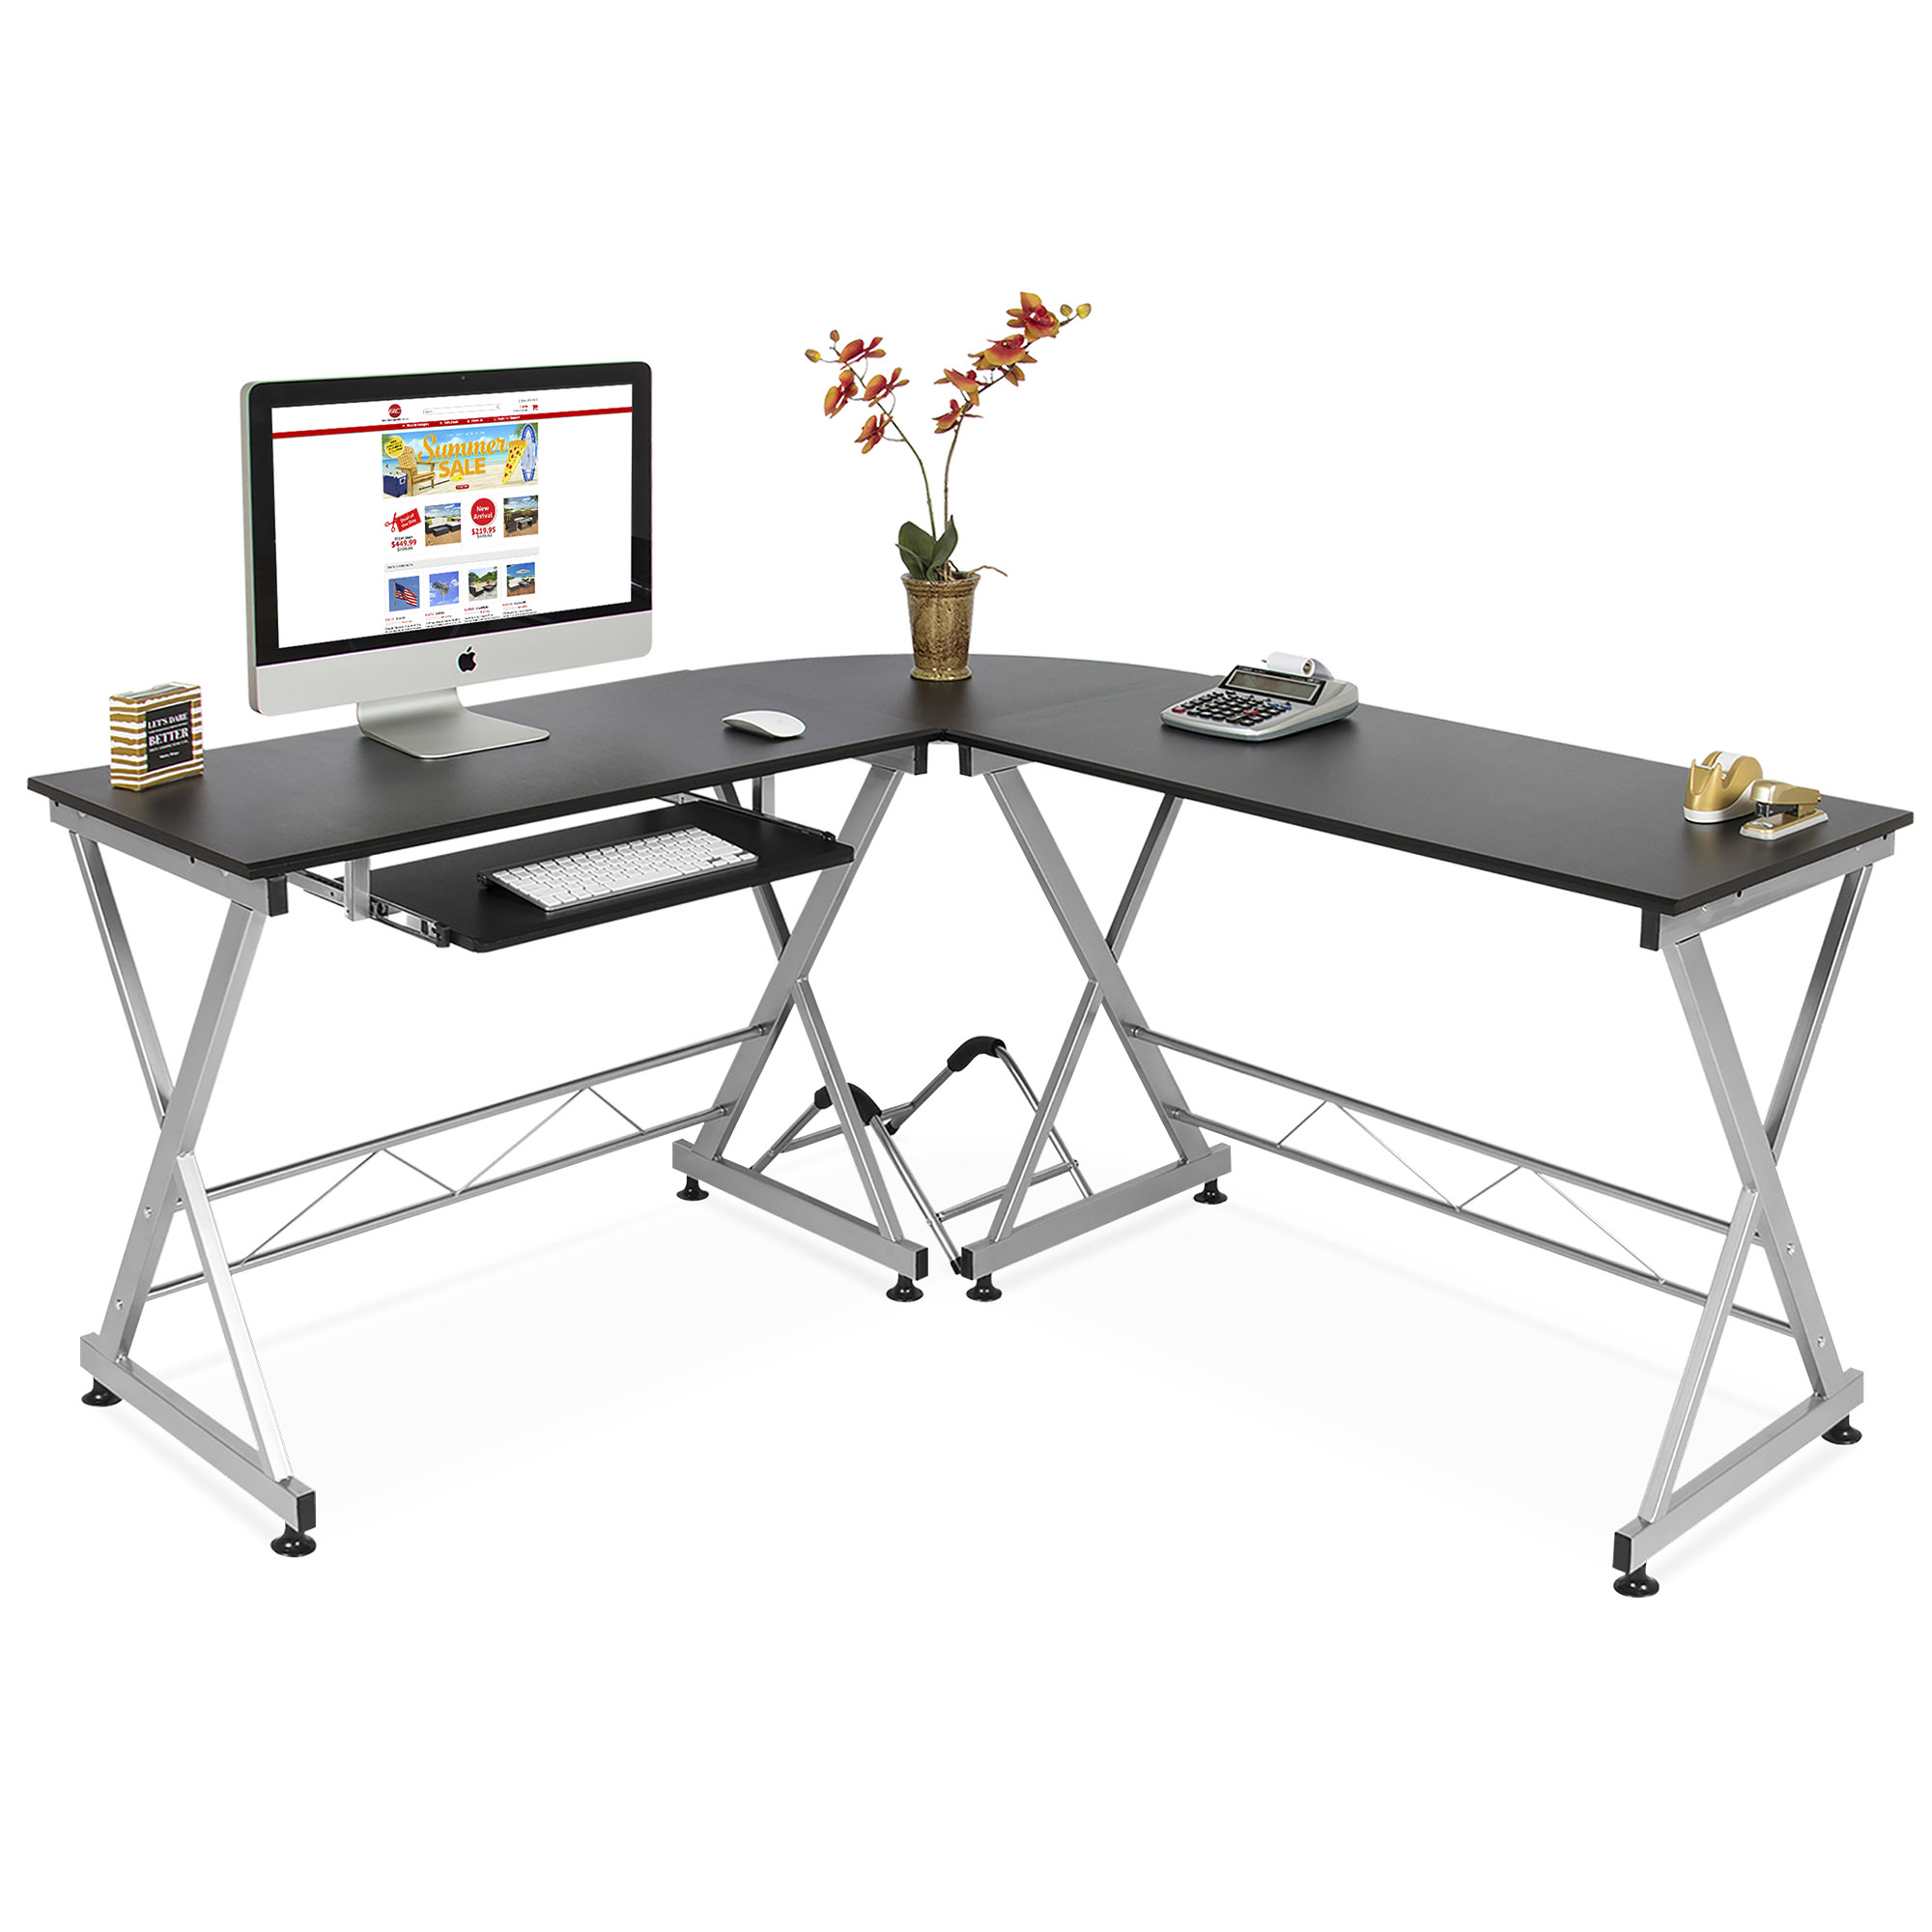 Best Choice Products Modular 3-Piece L-Shape Computer Desk Workstation for Home, Office w  Wooden Tabletop,... by Best Choice Products